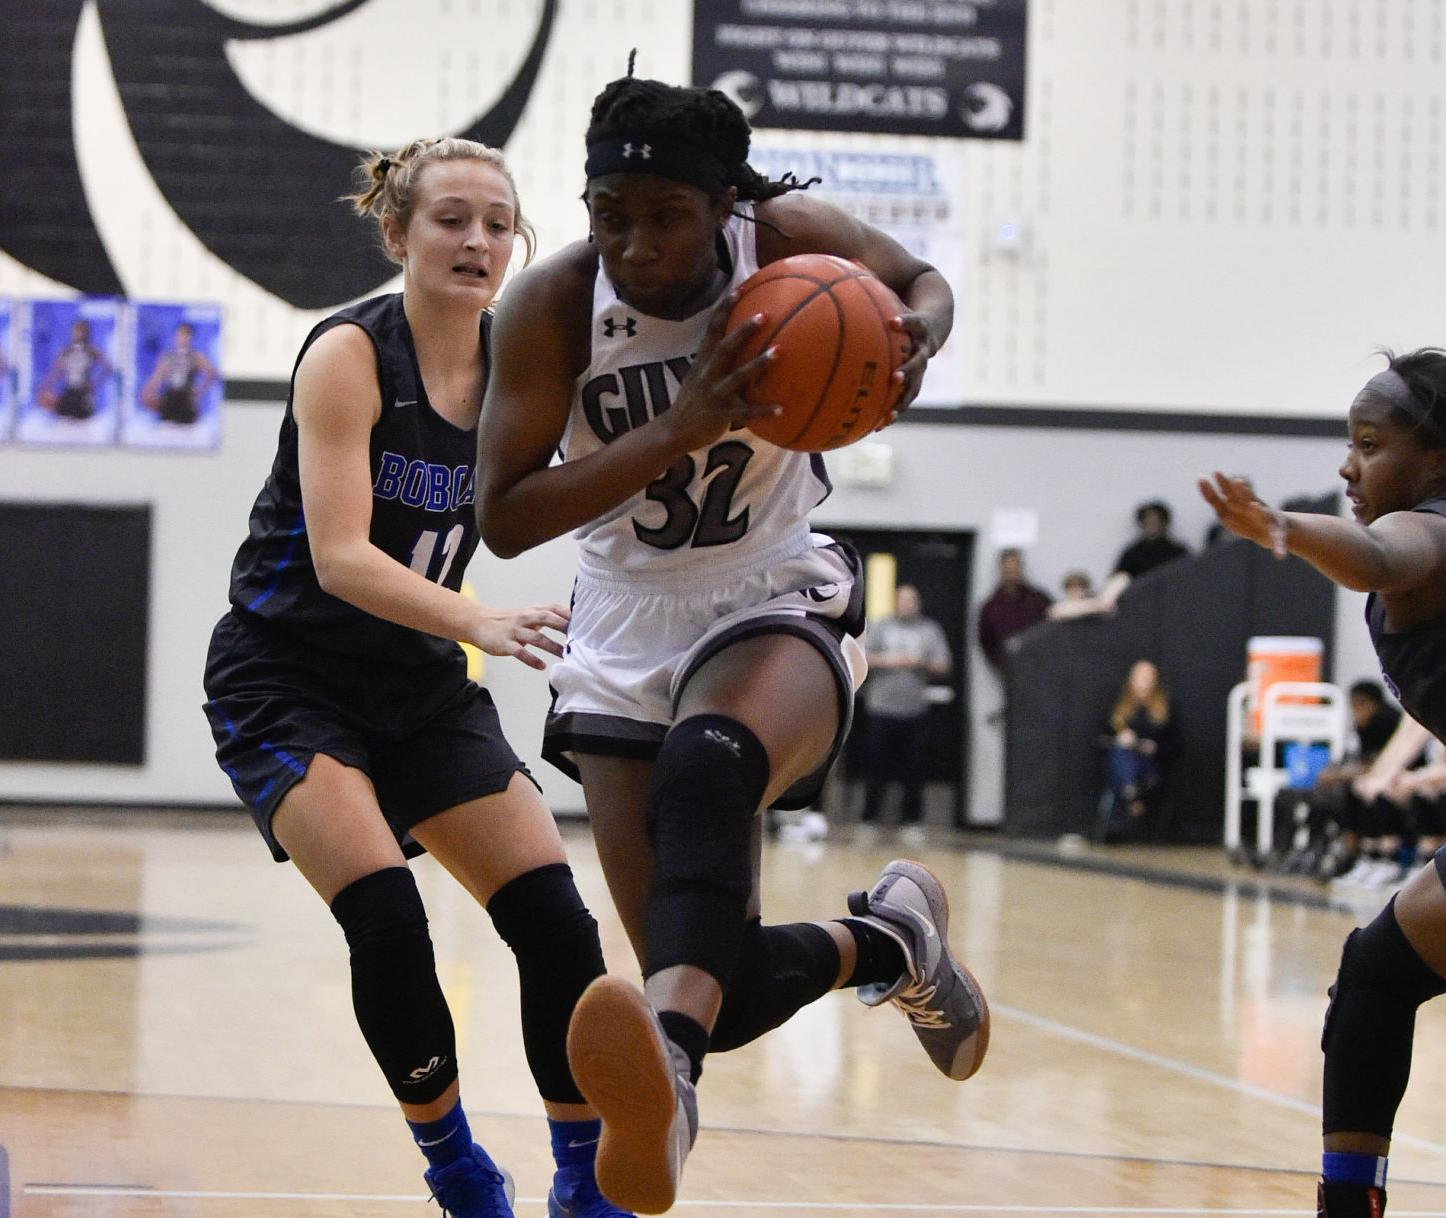 Girls basketball: Nine area teams advance to postseason